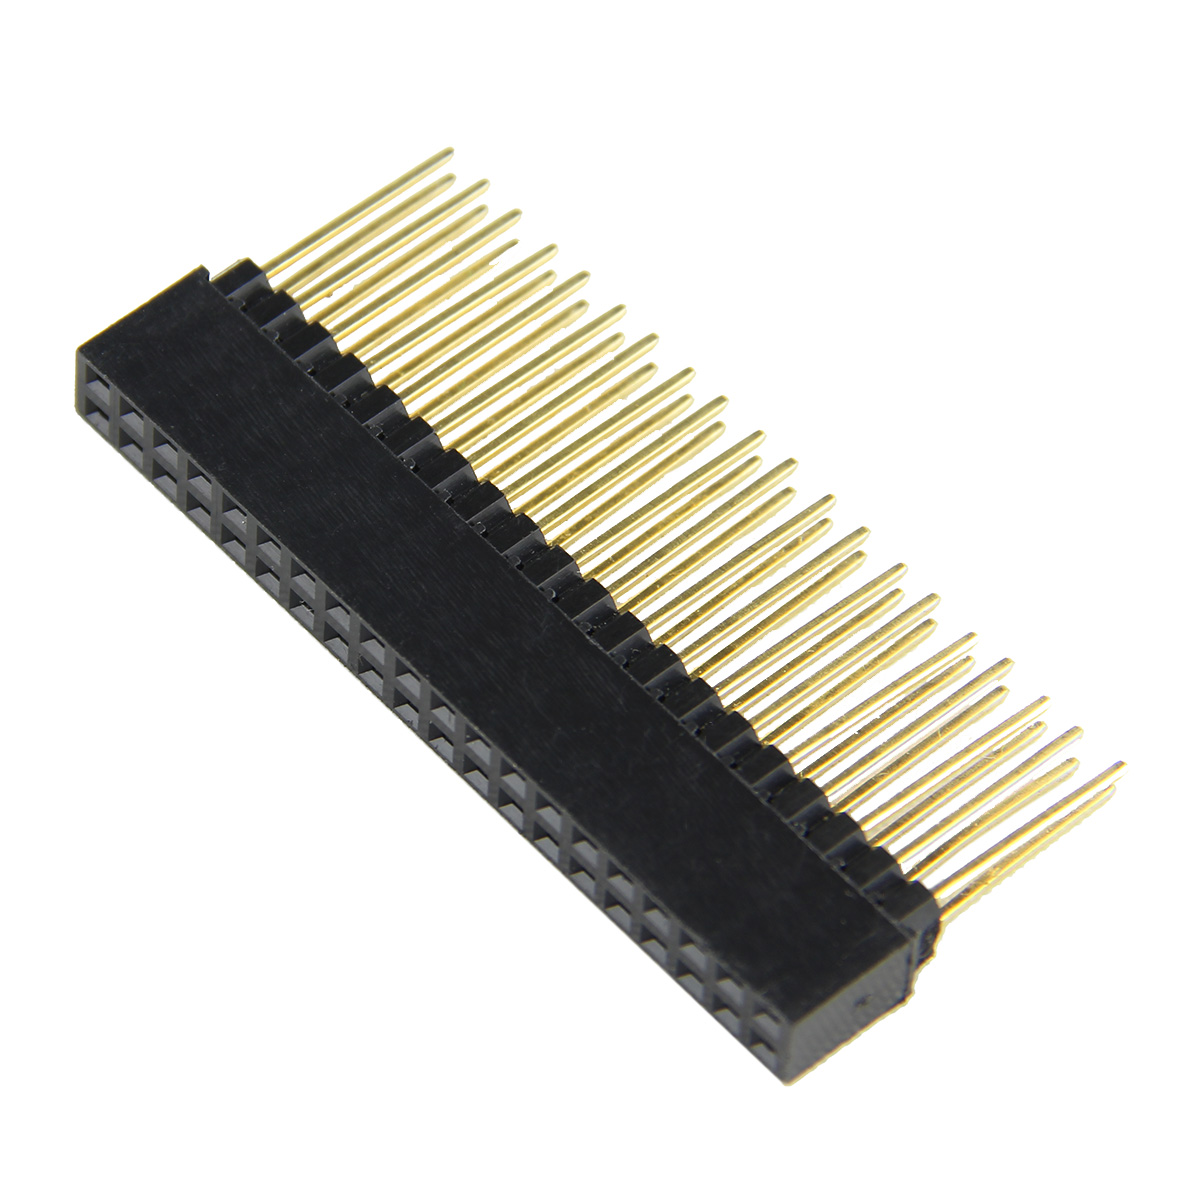 5PCS 12MM 40Pin Female Stacking Header For Raspberry Pi 2 Mode B& B+